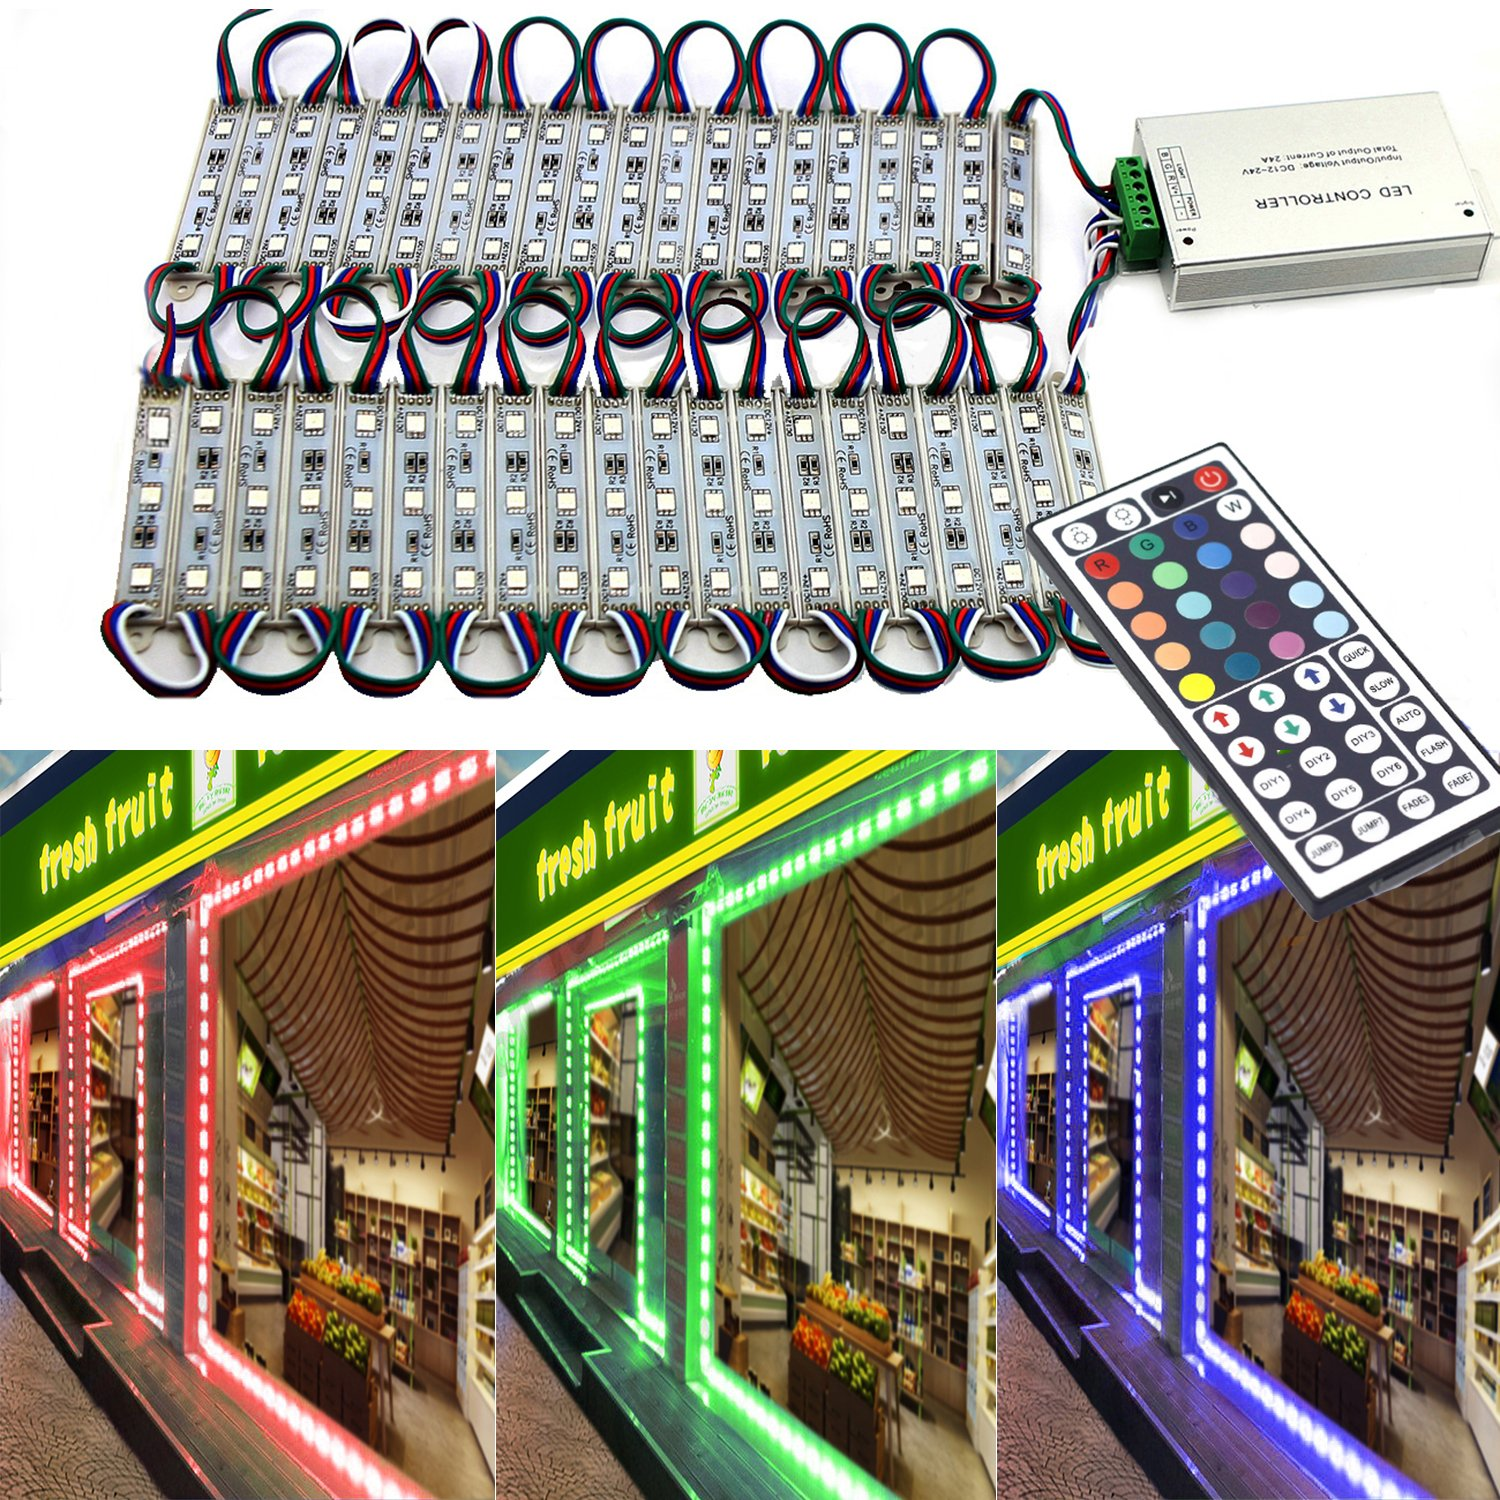 EAGWELL 20 Ft Storefront 40 Pieces RGB 5050 LED Light Module,2 Set 5050 SMD 120 LED Module Store Front Window Sign Strip Light by EAGWELL (Image #1)